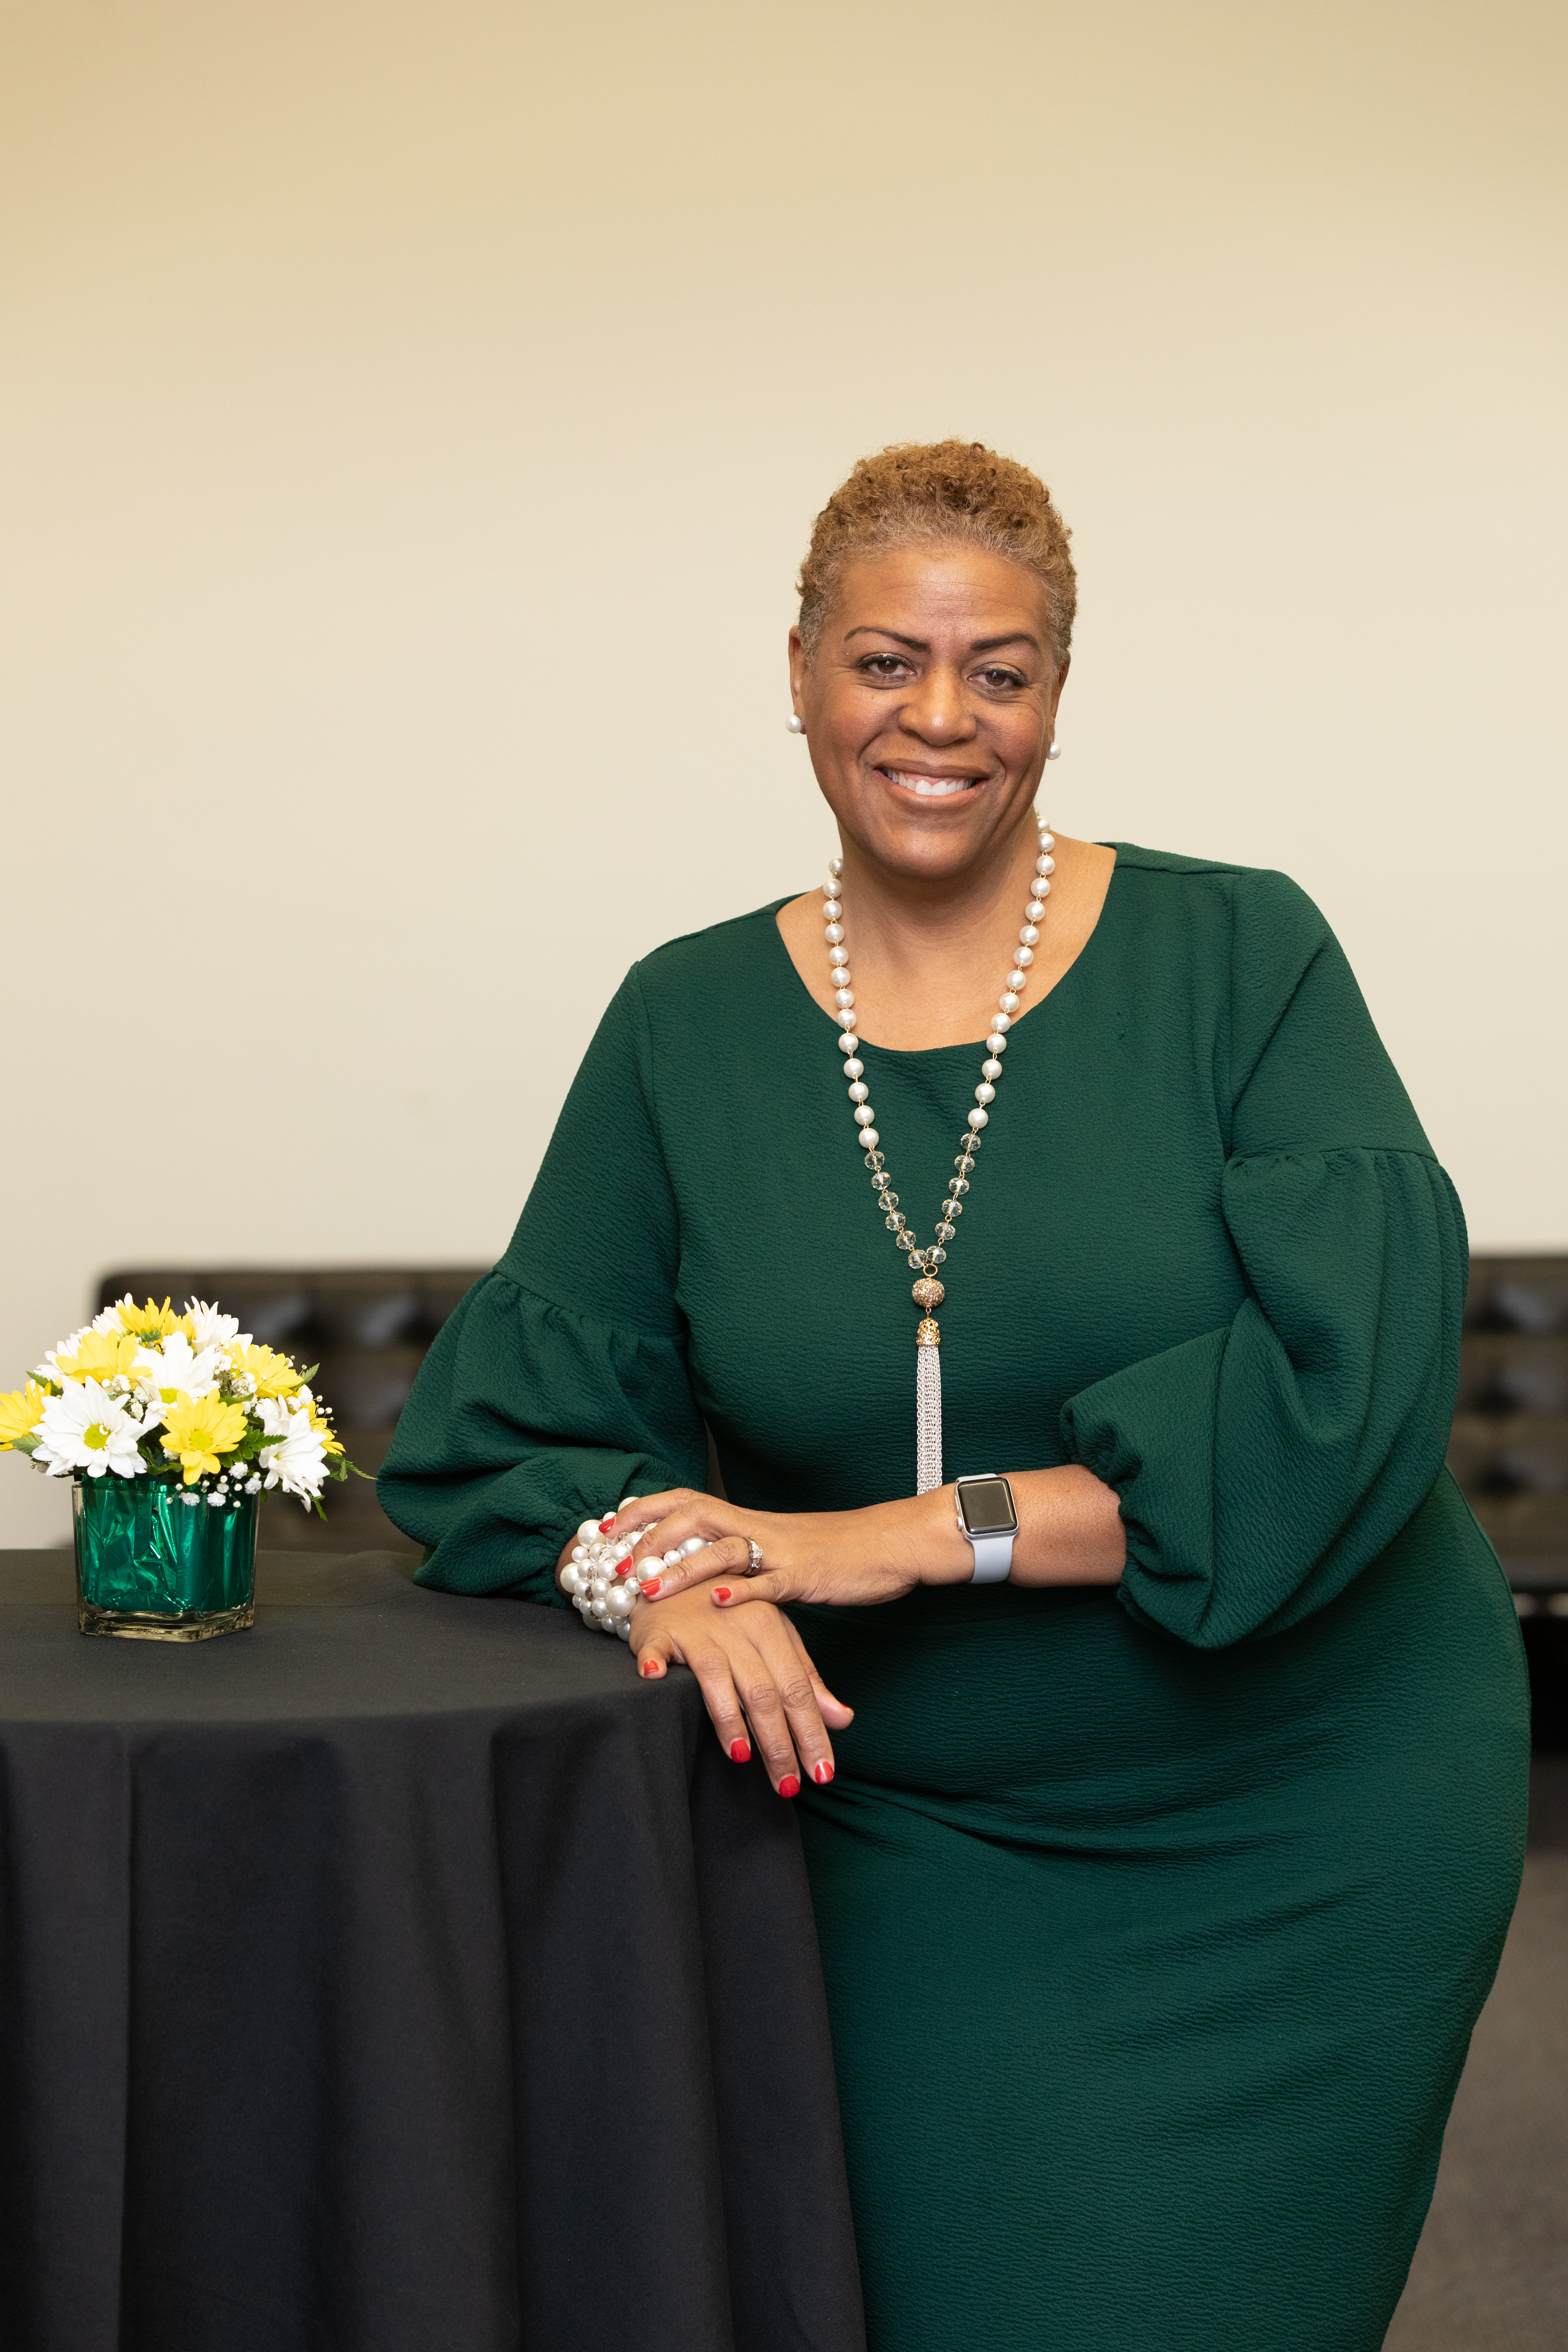 Wayne State Board of Governors chair Kim Trent